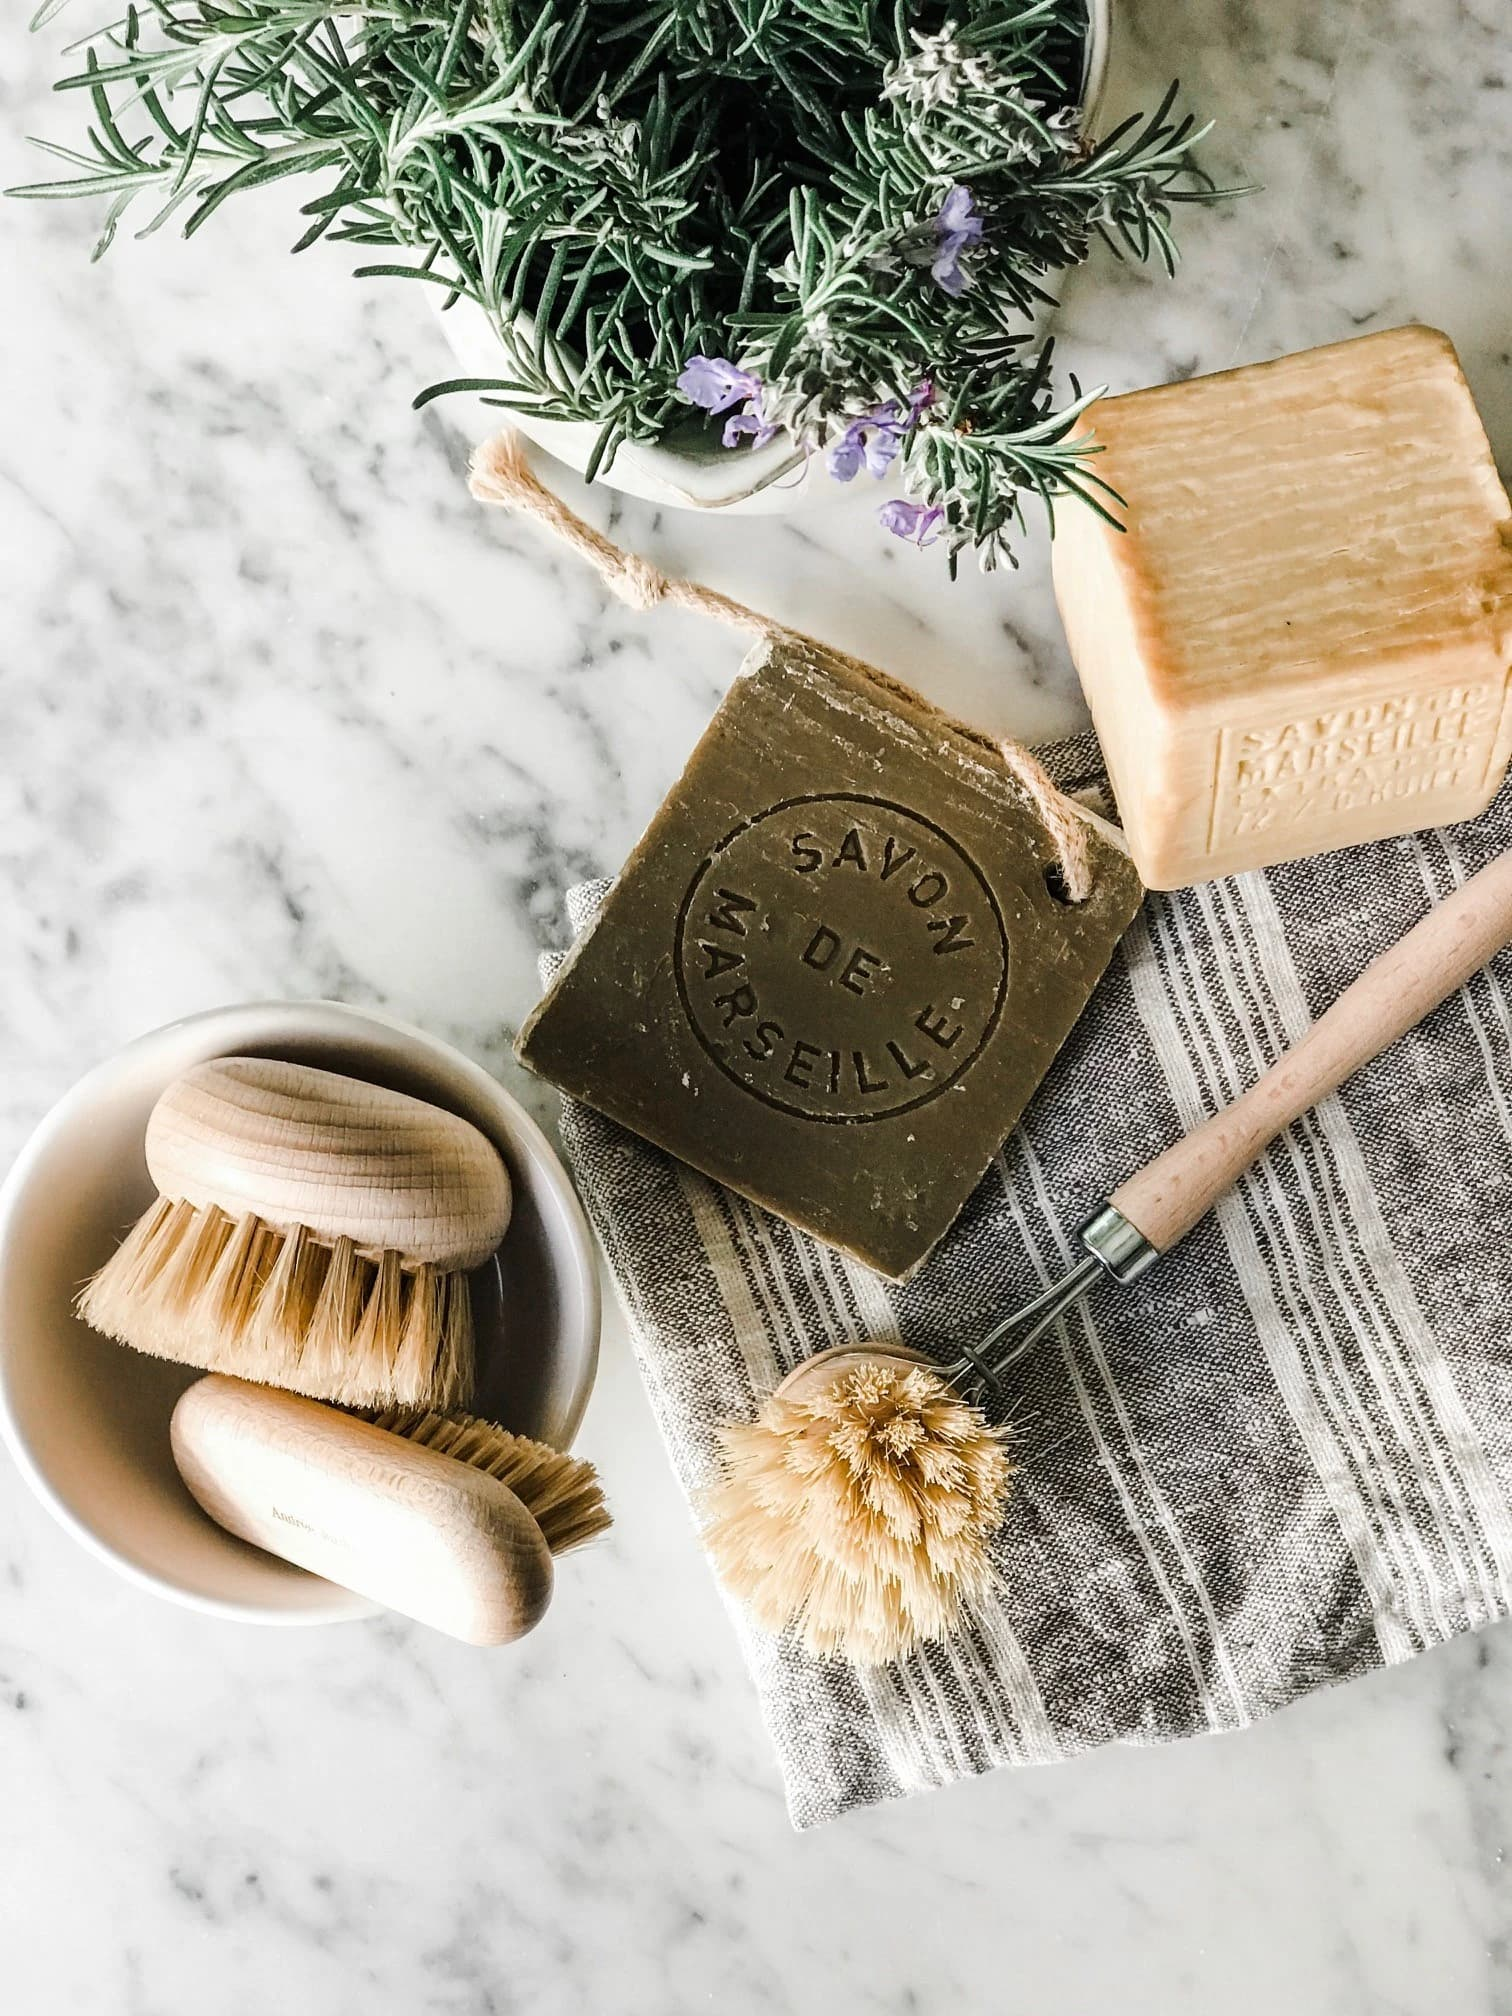 this is a collection of soap by greige design